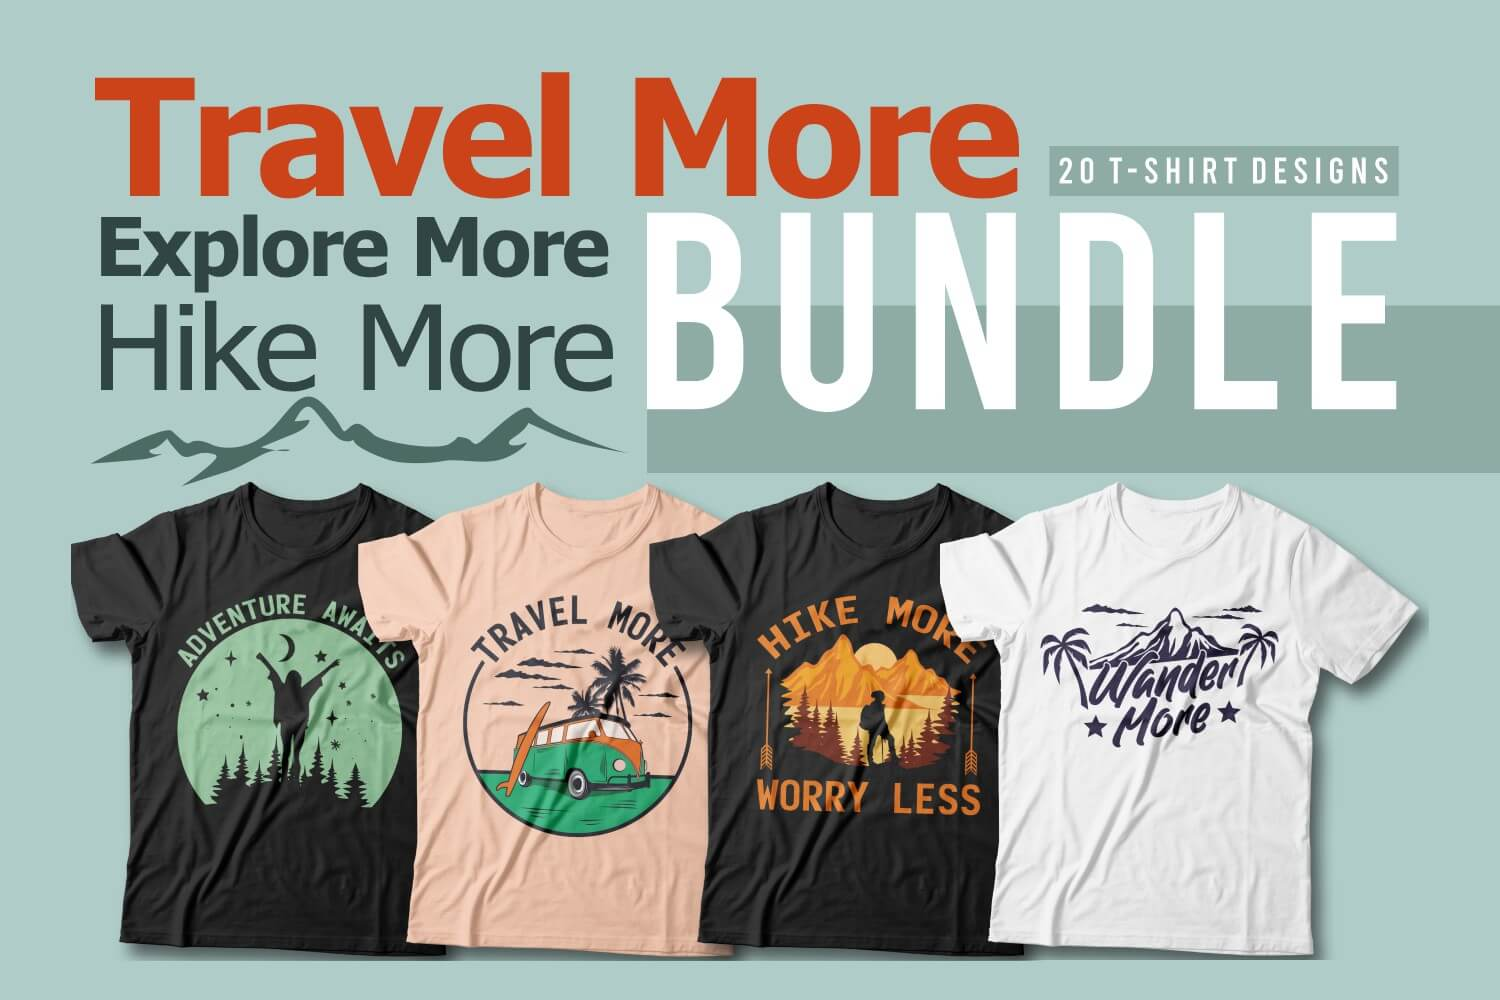 Travel More Cover